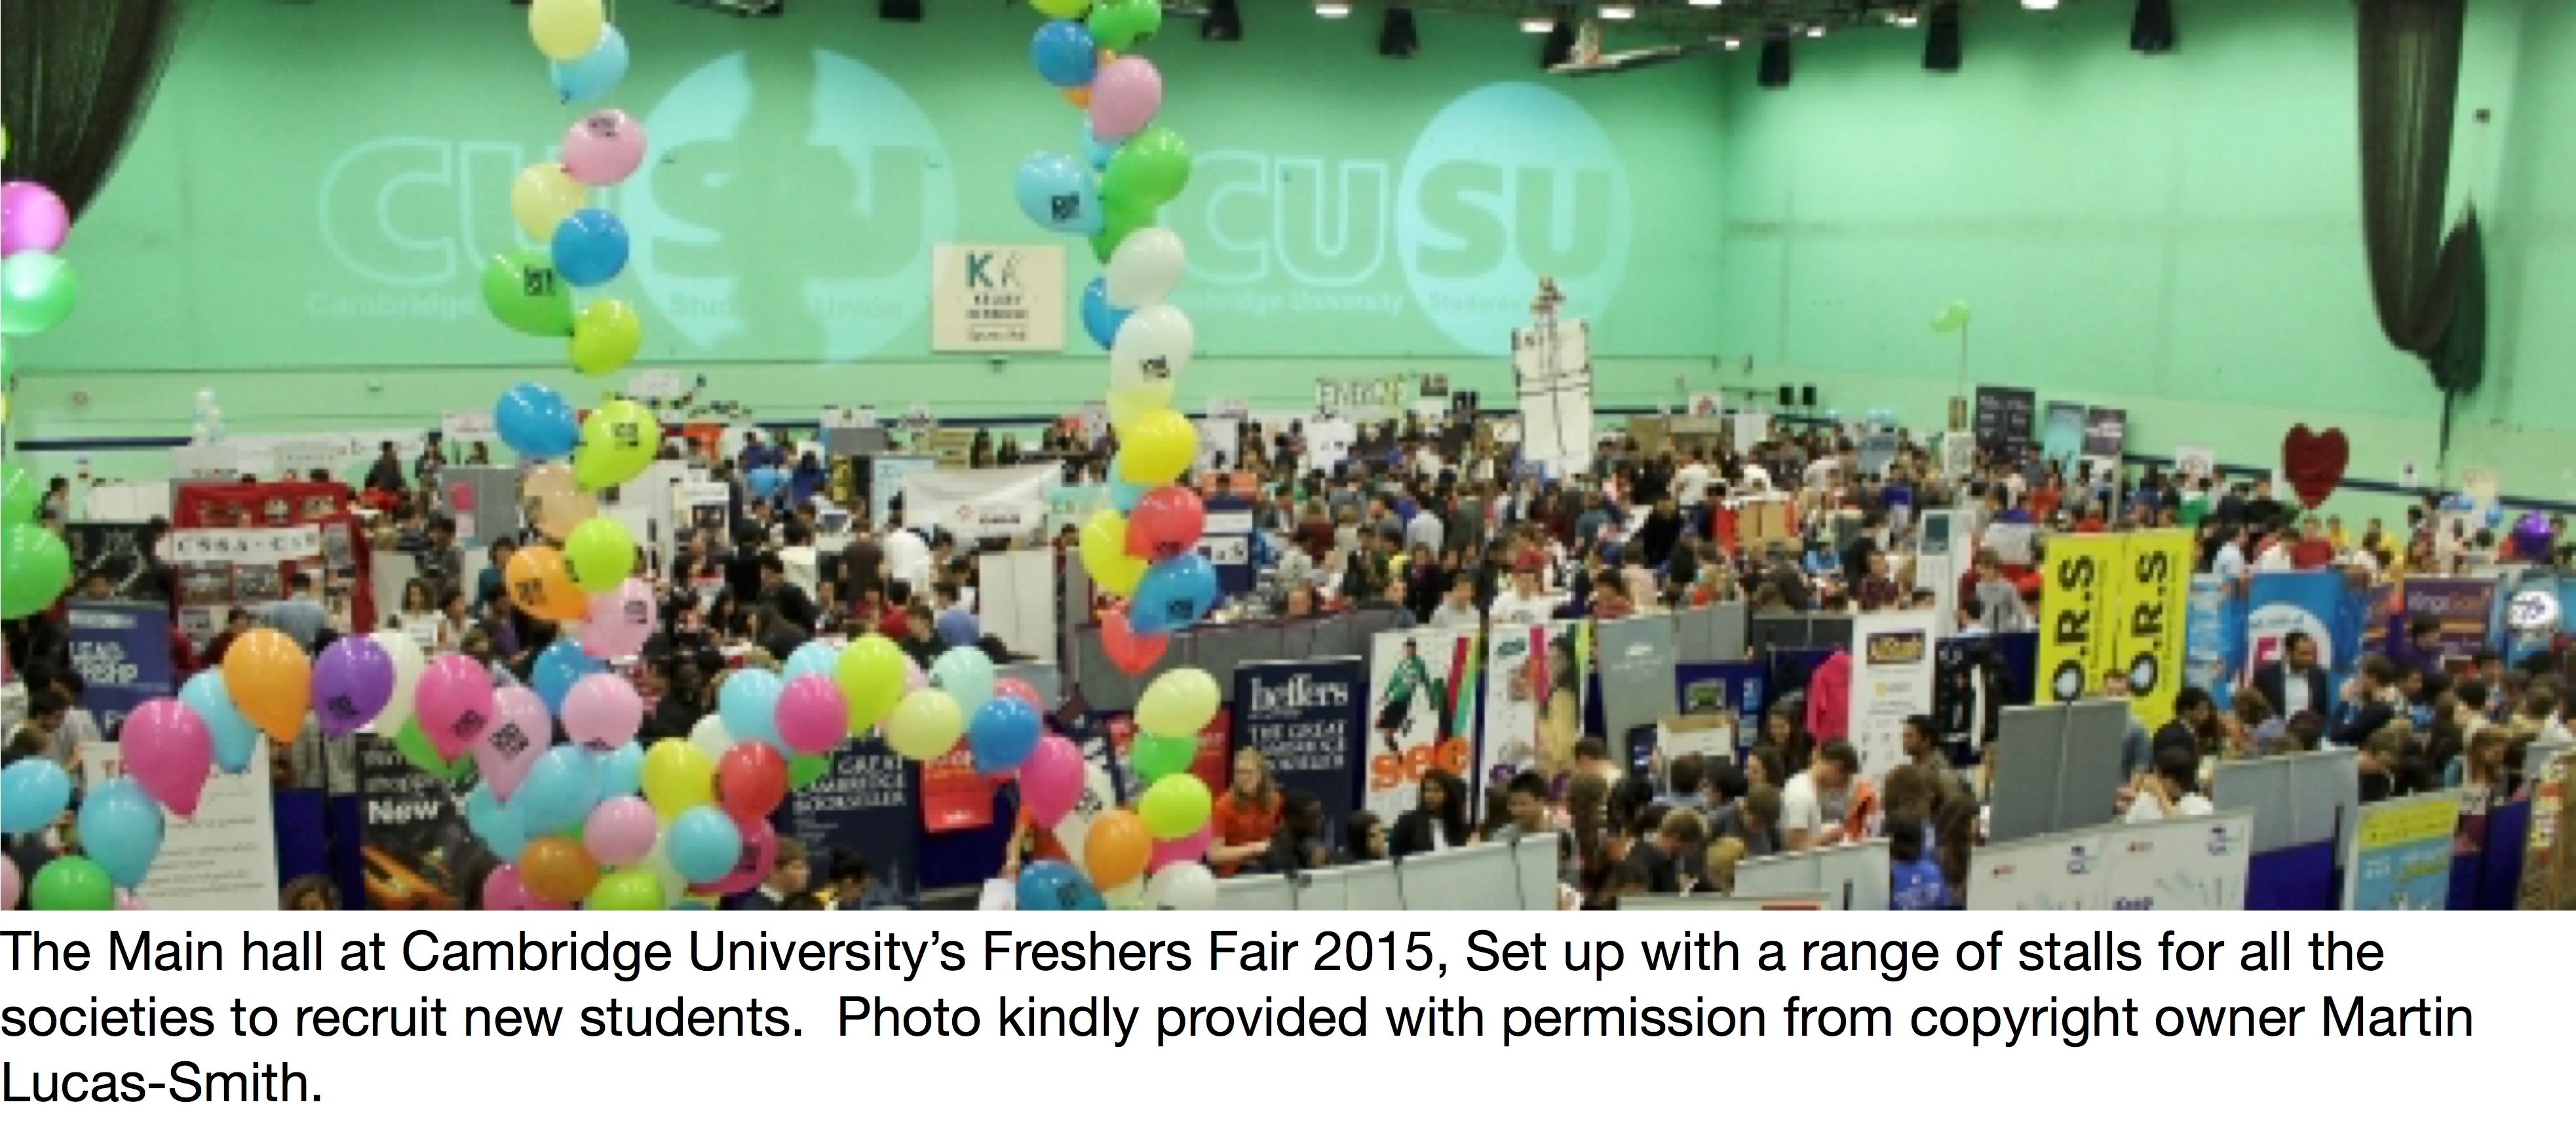 Freshers Fair at Cambridge University in the UK